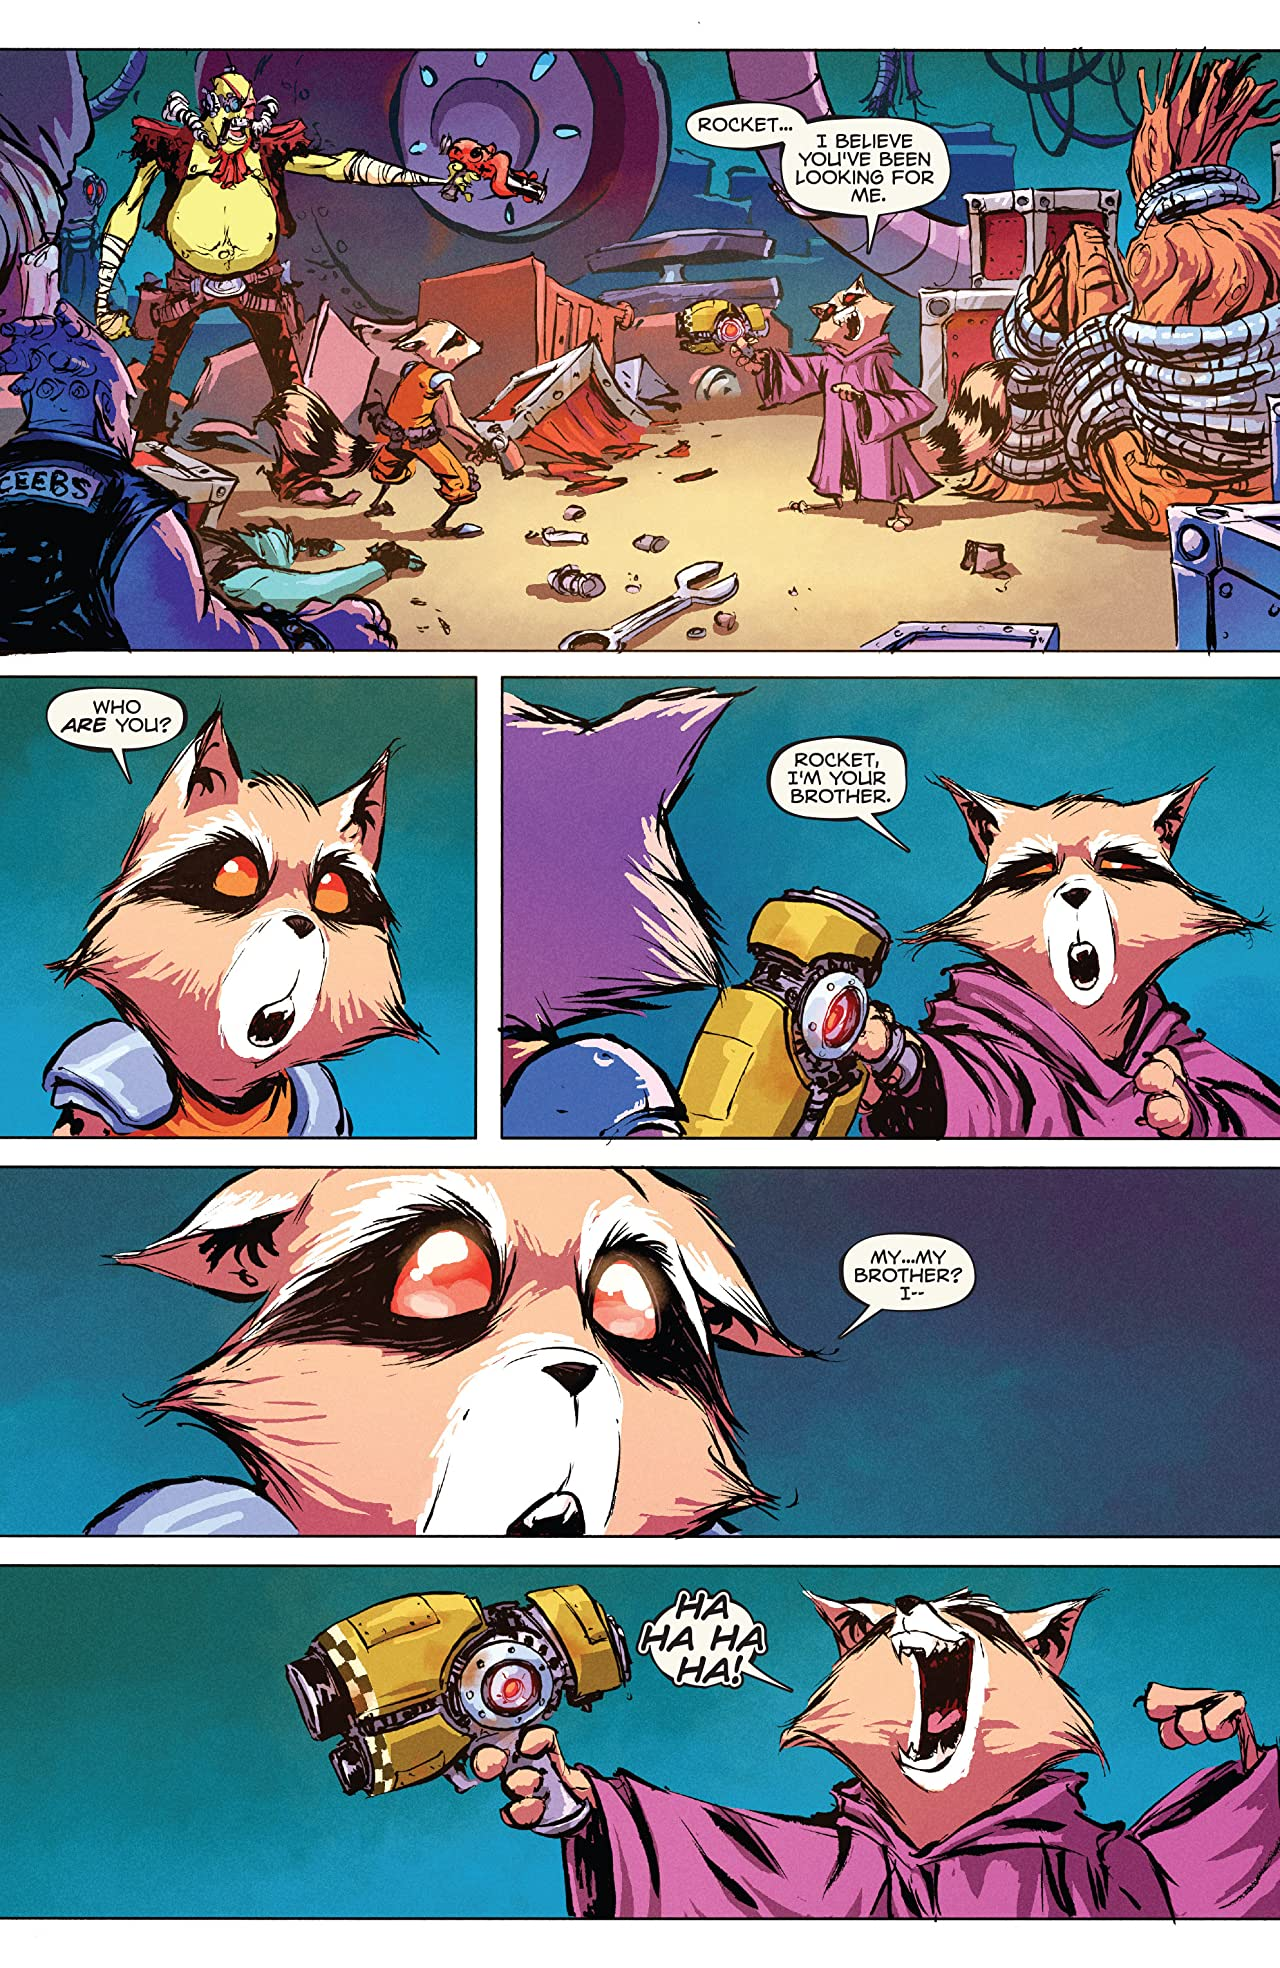 Rocket Raccoon (2014-2015) #4 - Comics by comiXology